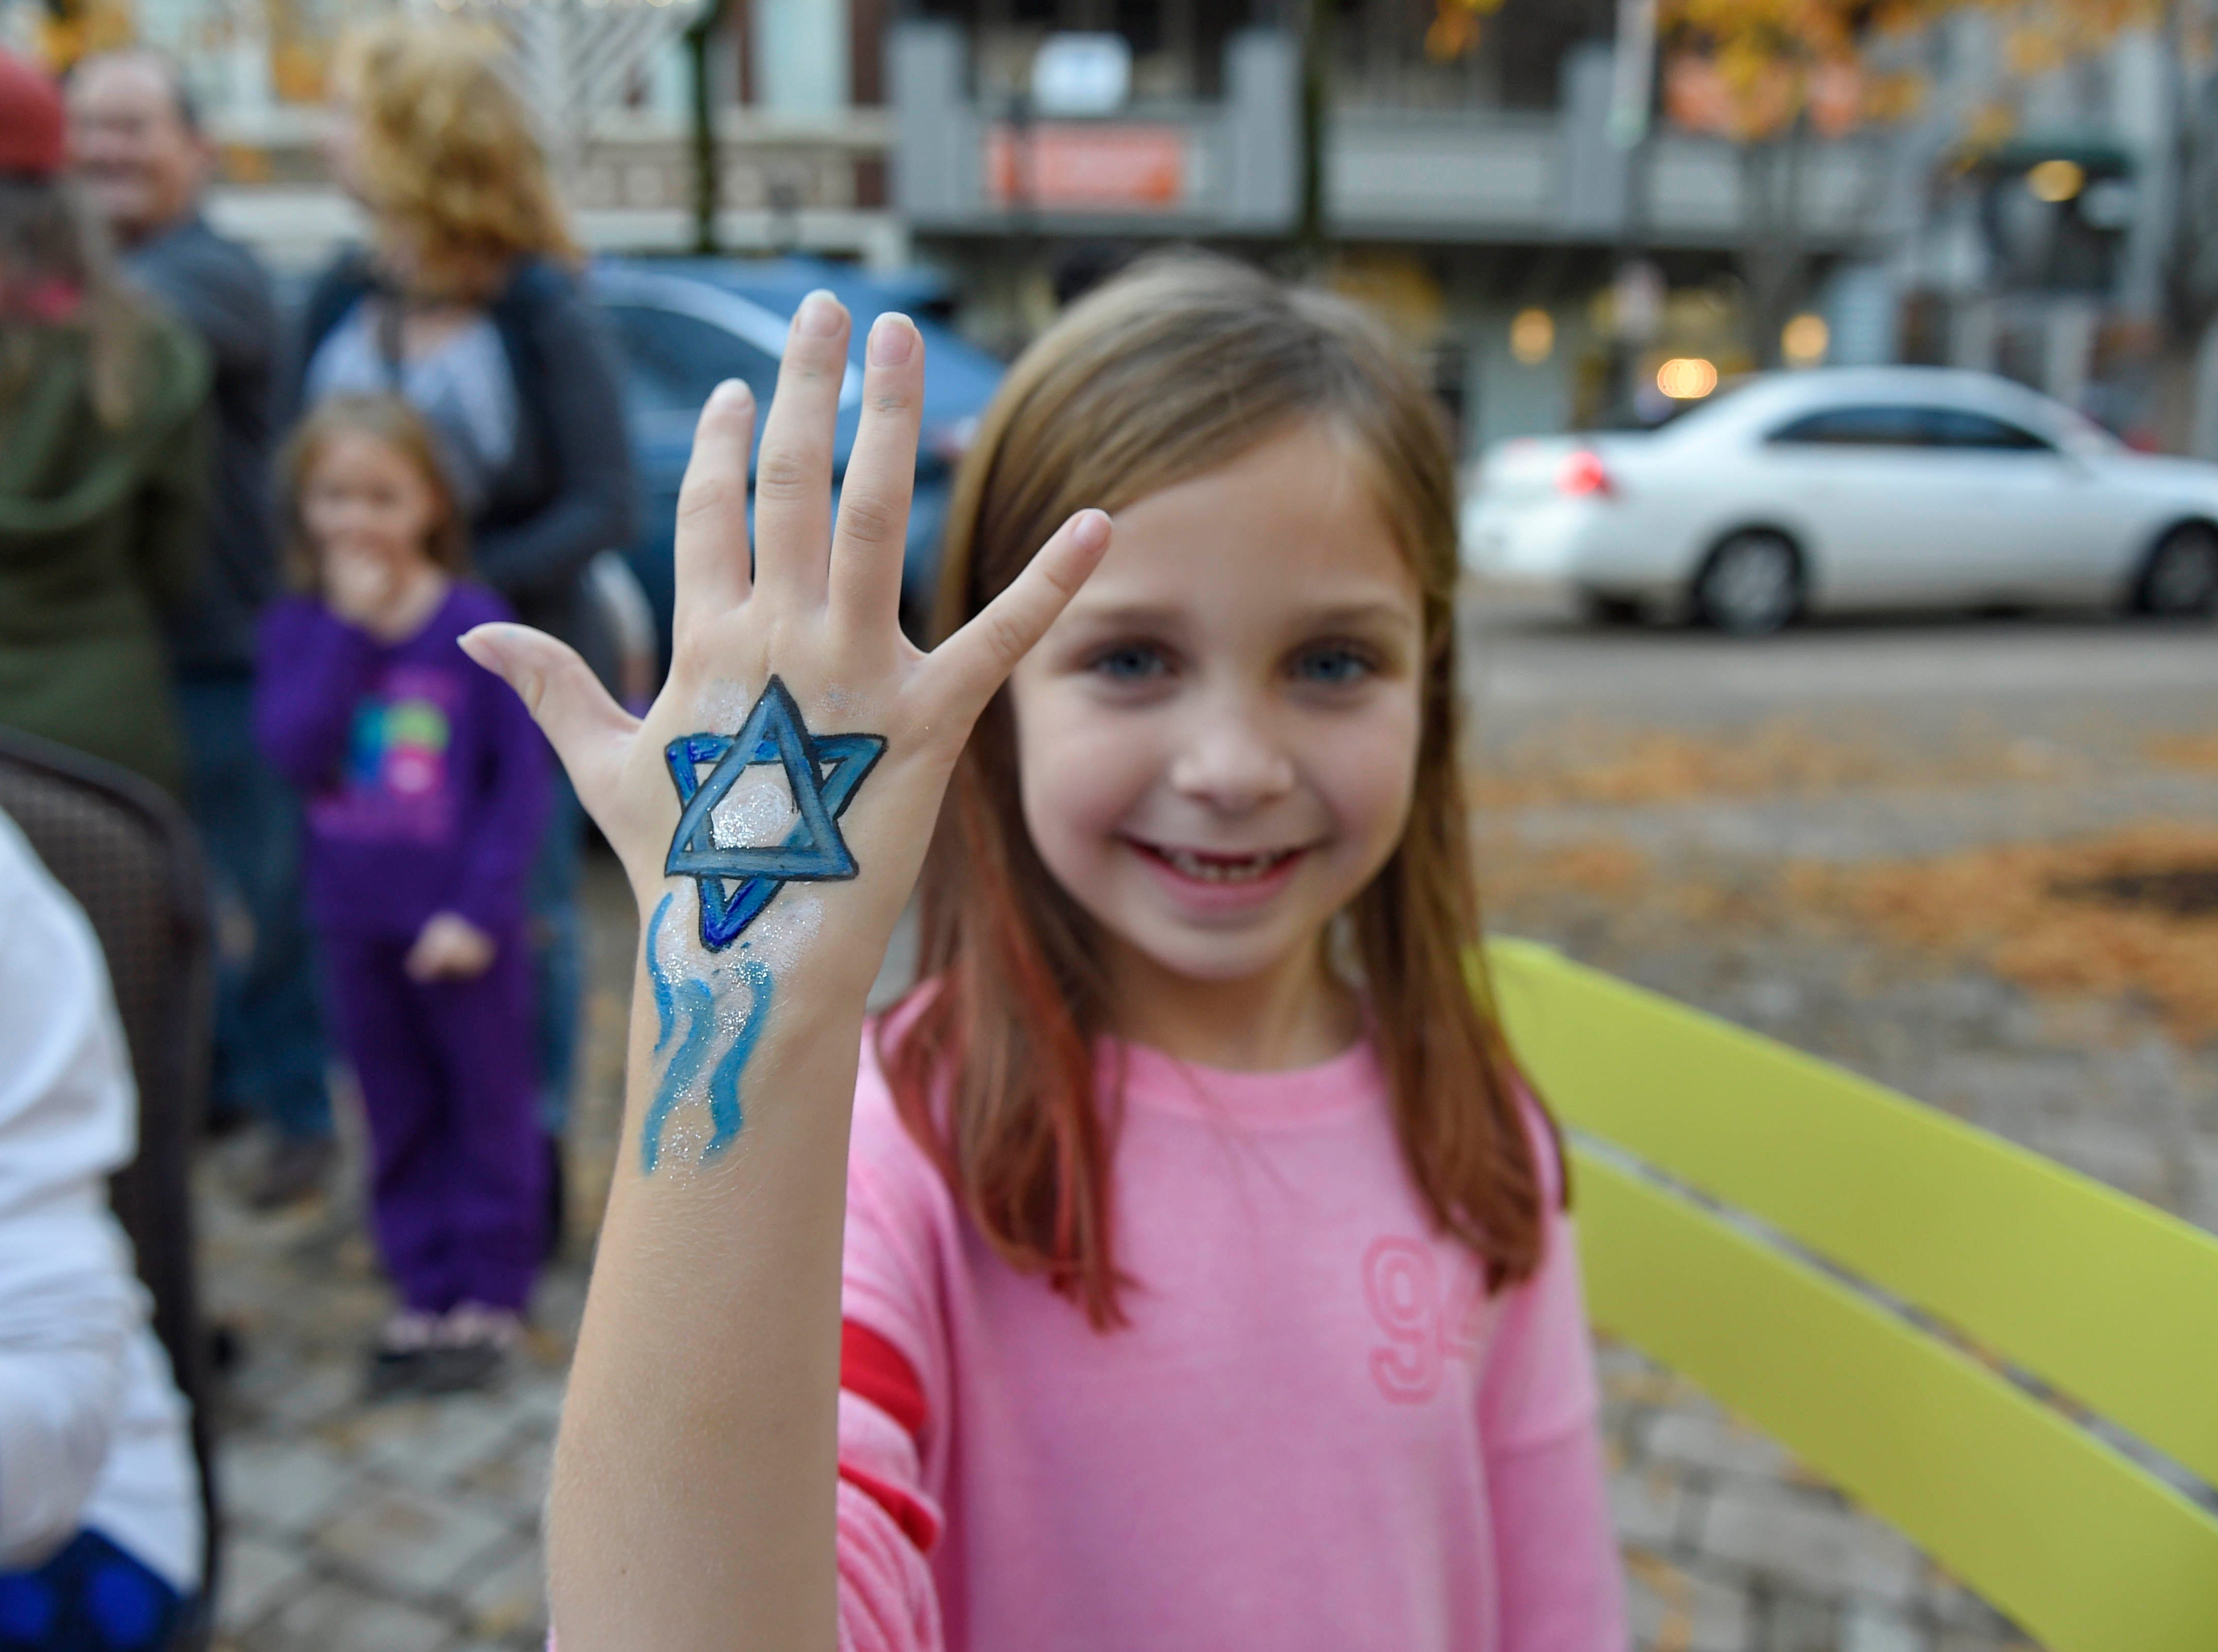 The annual Jewish celebration of Chanukah was kicked off with the lighting of the Menorah at NOMA Square Sunday, Dec. 2, 2018.